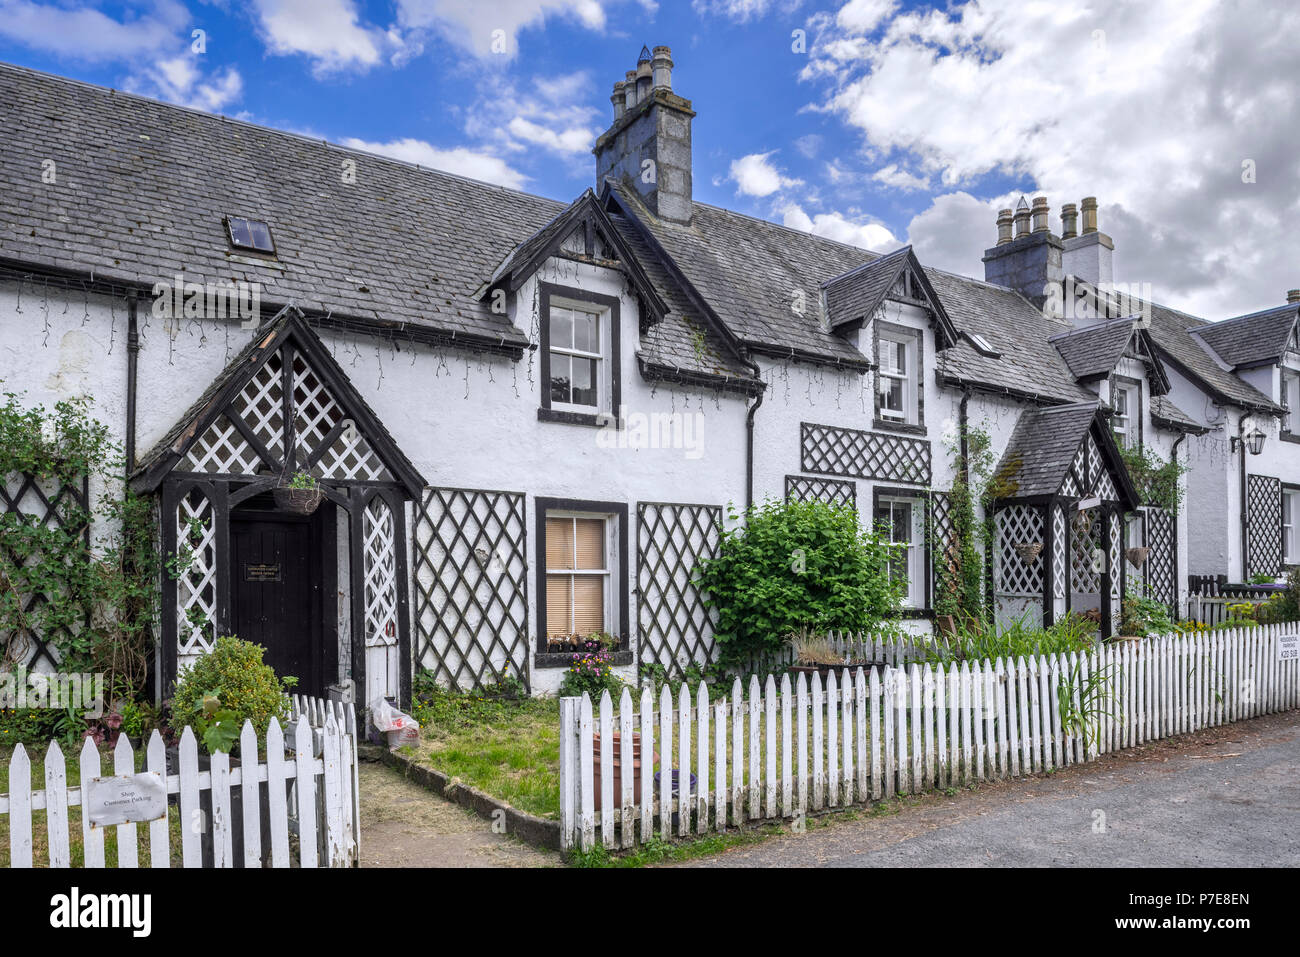 Row of white houses in the village Kenmore, Perth and Kinross, Perthshire in the Highlands of Scotland, UK - Stock Image